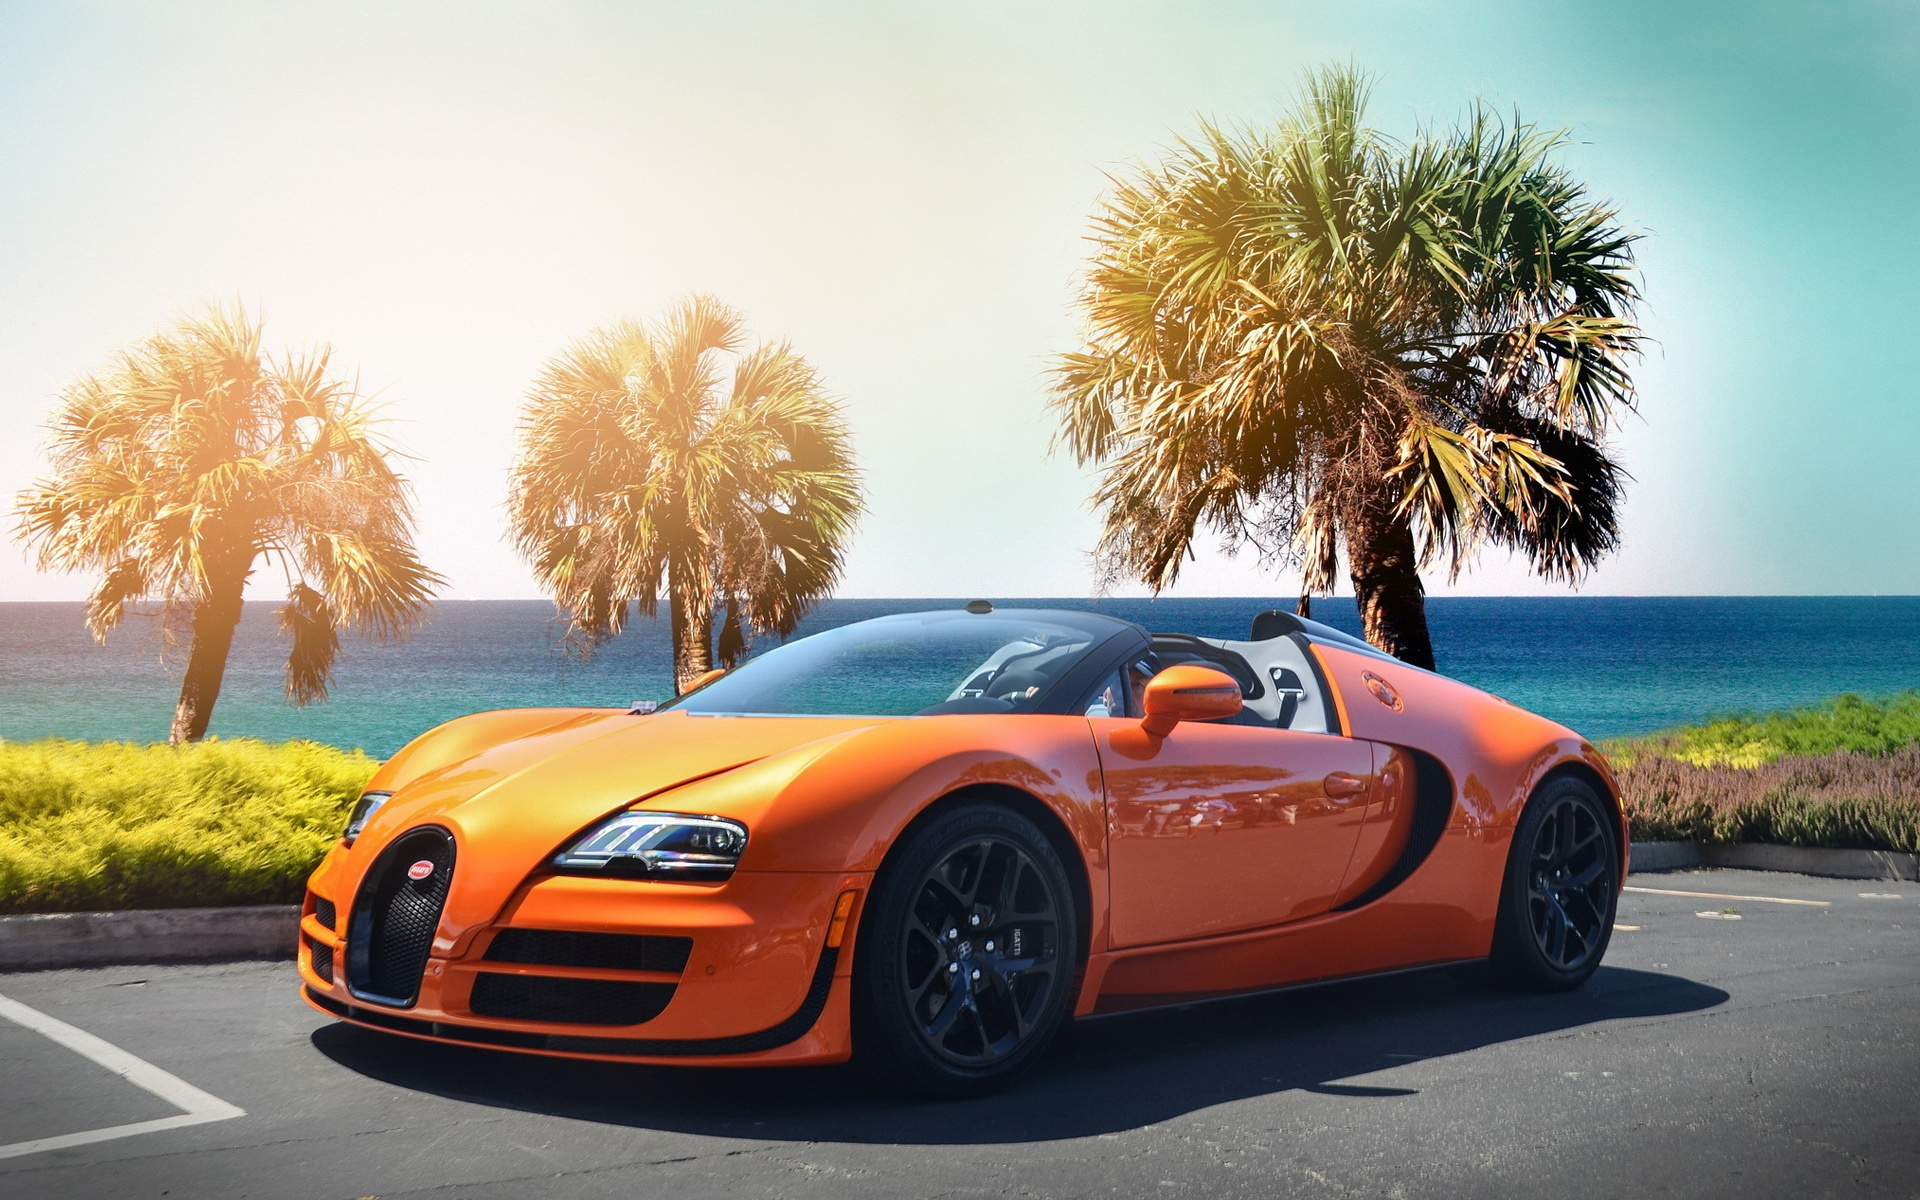 Bugatti Veyron Hypercar Orange Wallpaper   HD 1920x1200